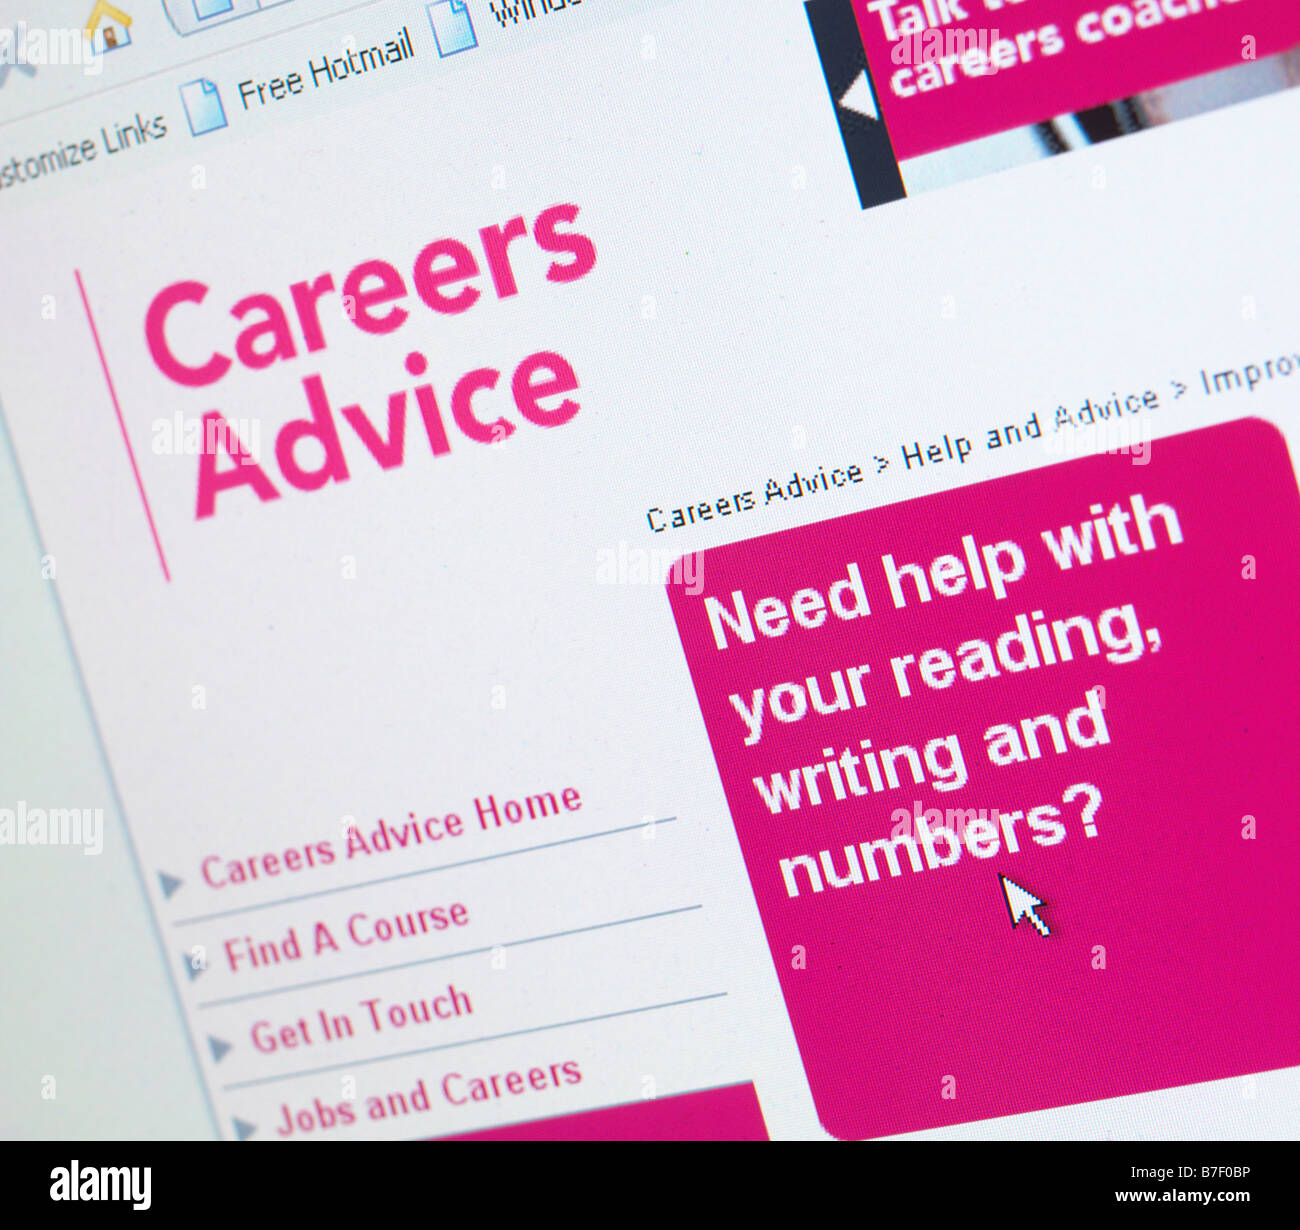 WEB SITE UK JOB CAREERS ADVICE - Stock Image